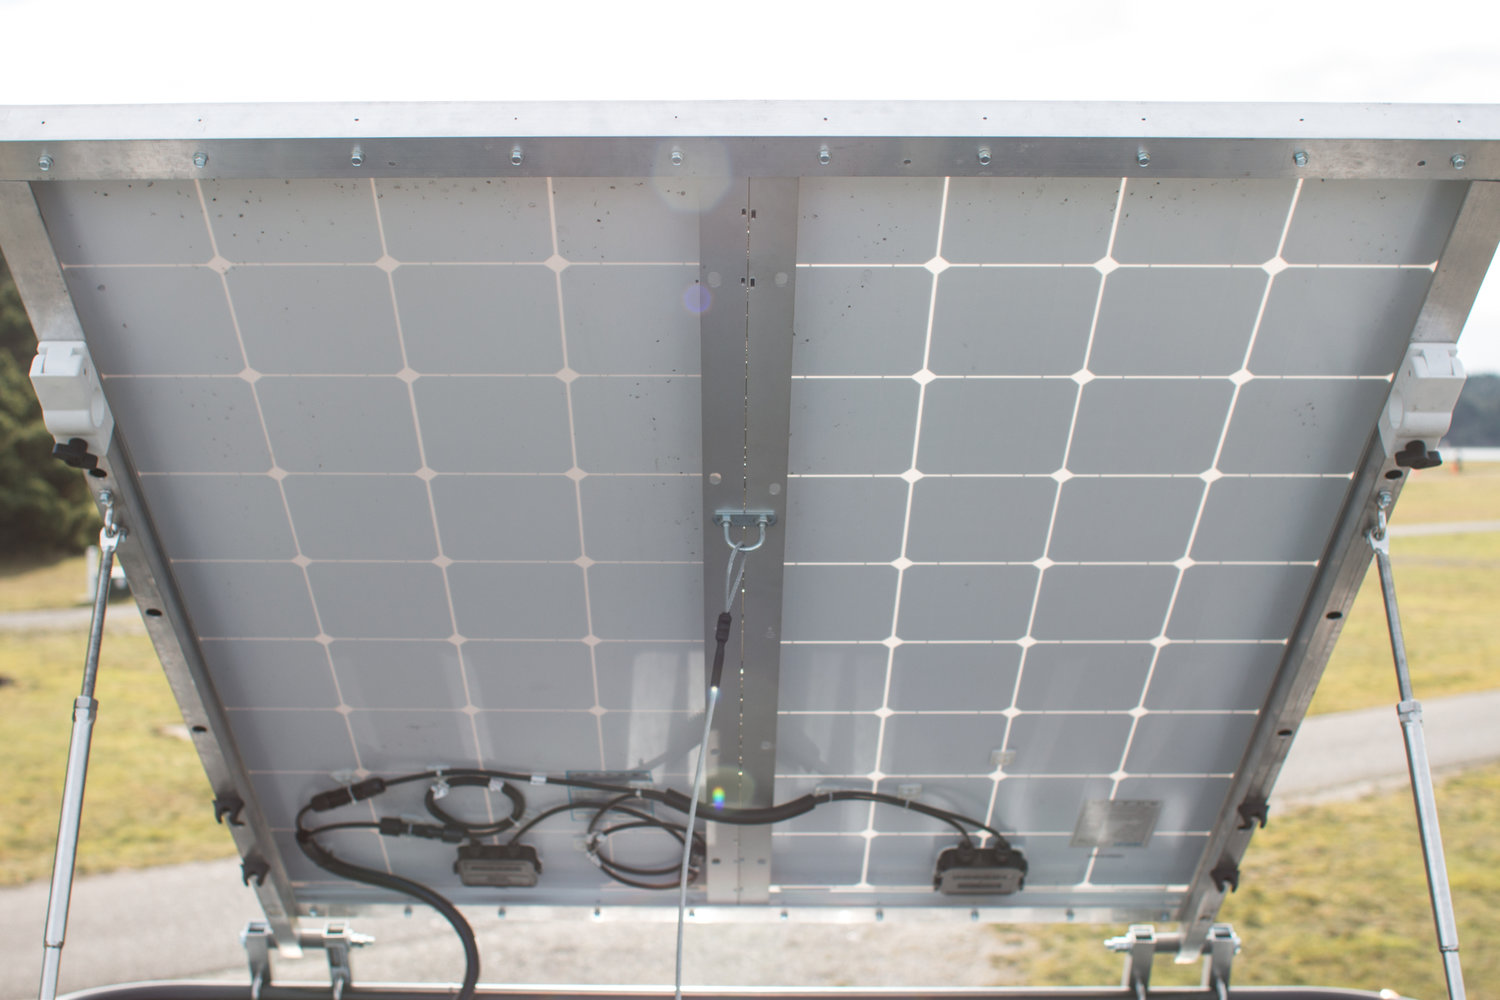 The two solar panels are fixed together with some custom framing, making it effectively one giant solar panel. Thanks to our roof rack we could do the two panels lengthwise along the van, which optimized our space.